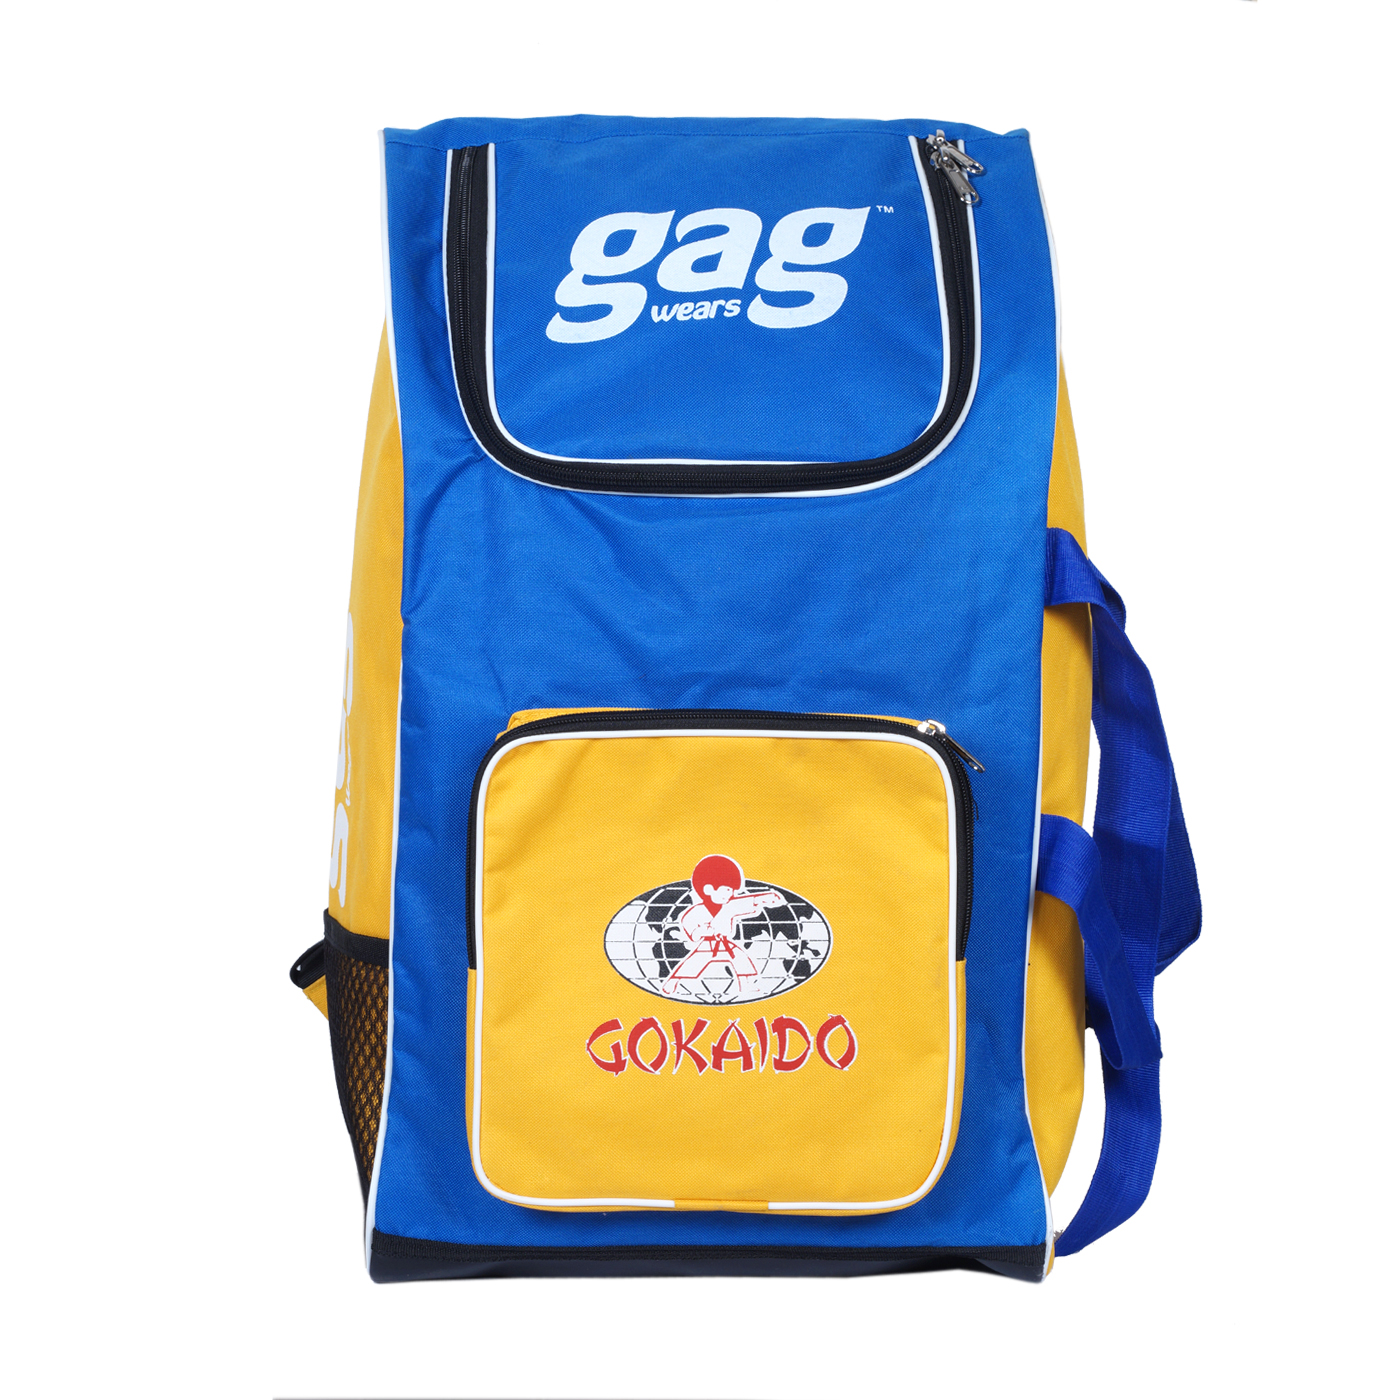 sports bags cricket kit Manufacturers, Wholesale Suppliers